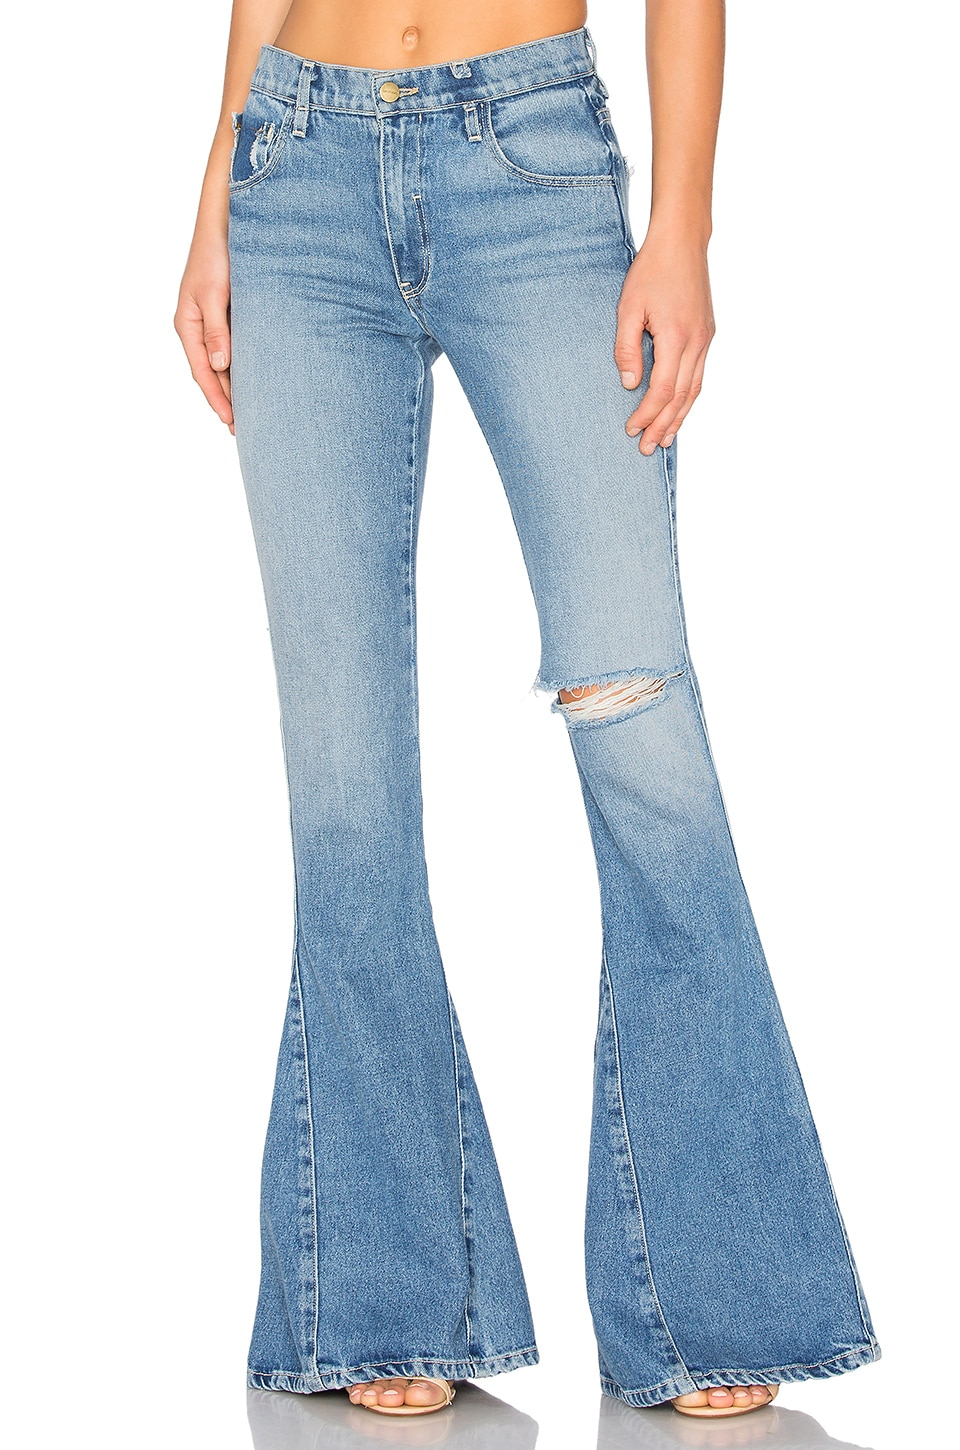 GM STUDIO The Skinny Bell Bottoms in Old Found Wash